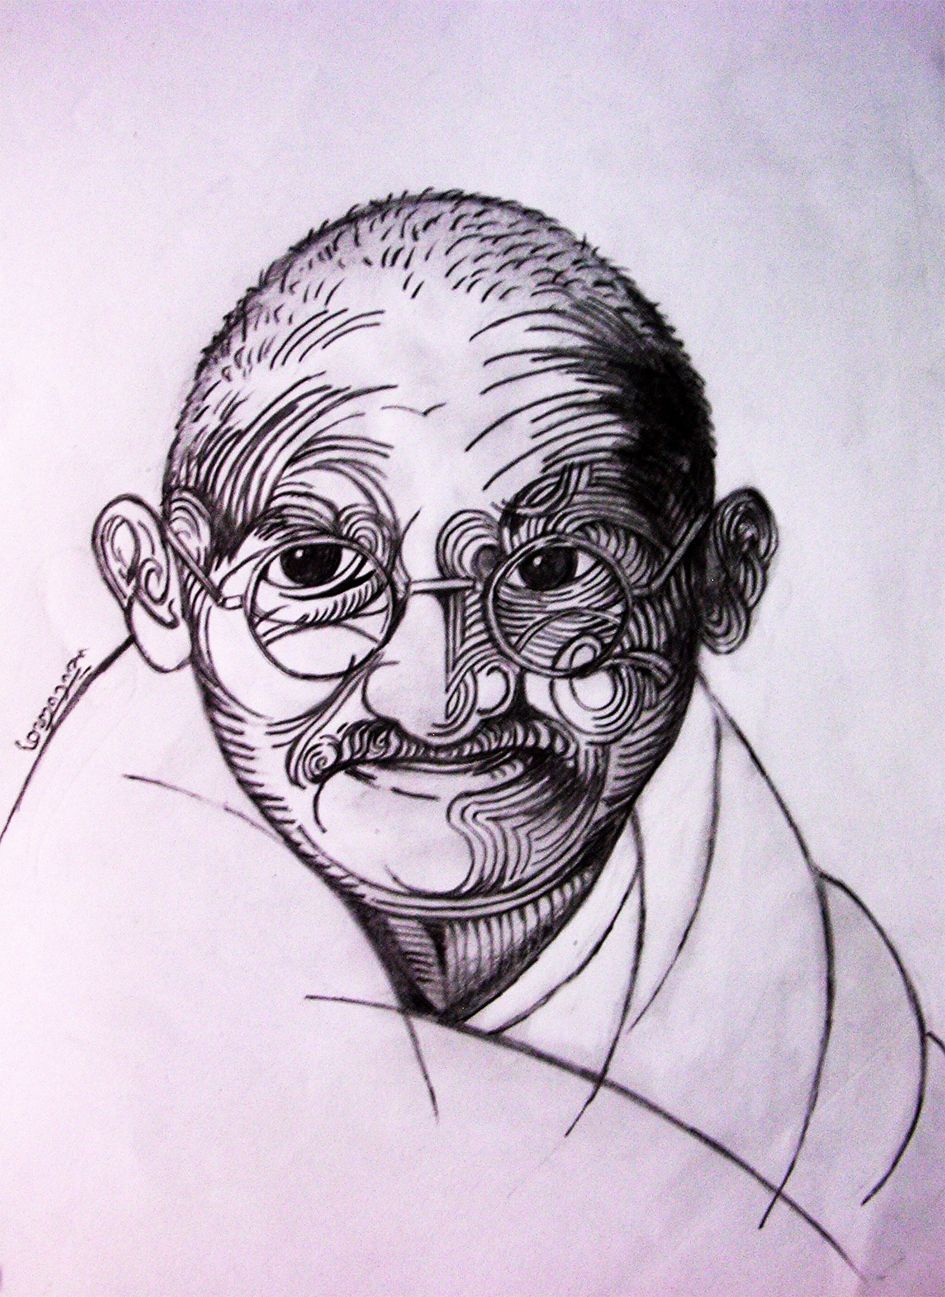 Mahatma gandhi mahatma gandhi pencil drawings drawings in pencil graphite drawings color